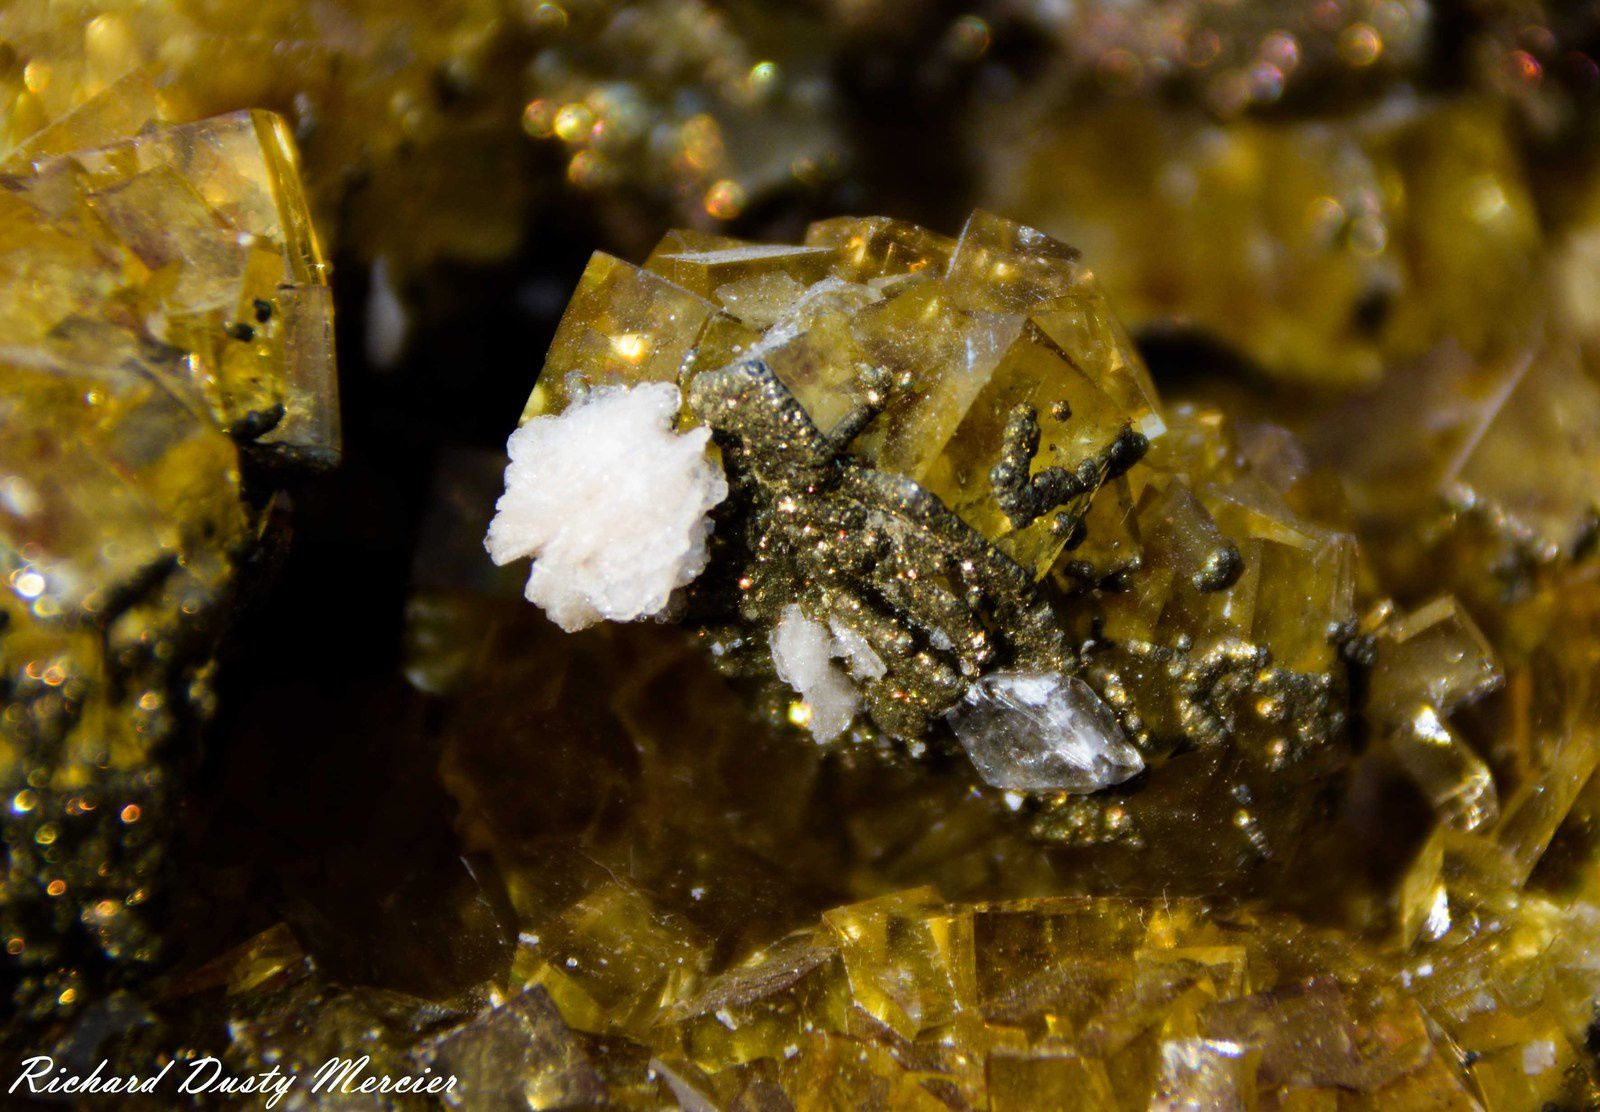 Yellow Fluorite with red Cinnabar inclusion with Pyrite, Calcite and Barytine from Moscona, Asturias, Spaine